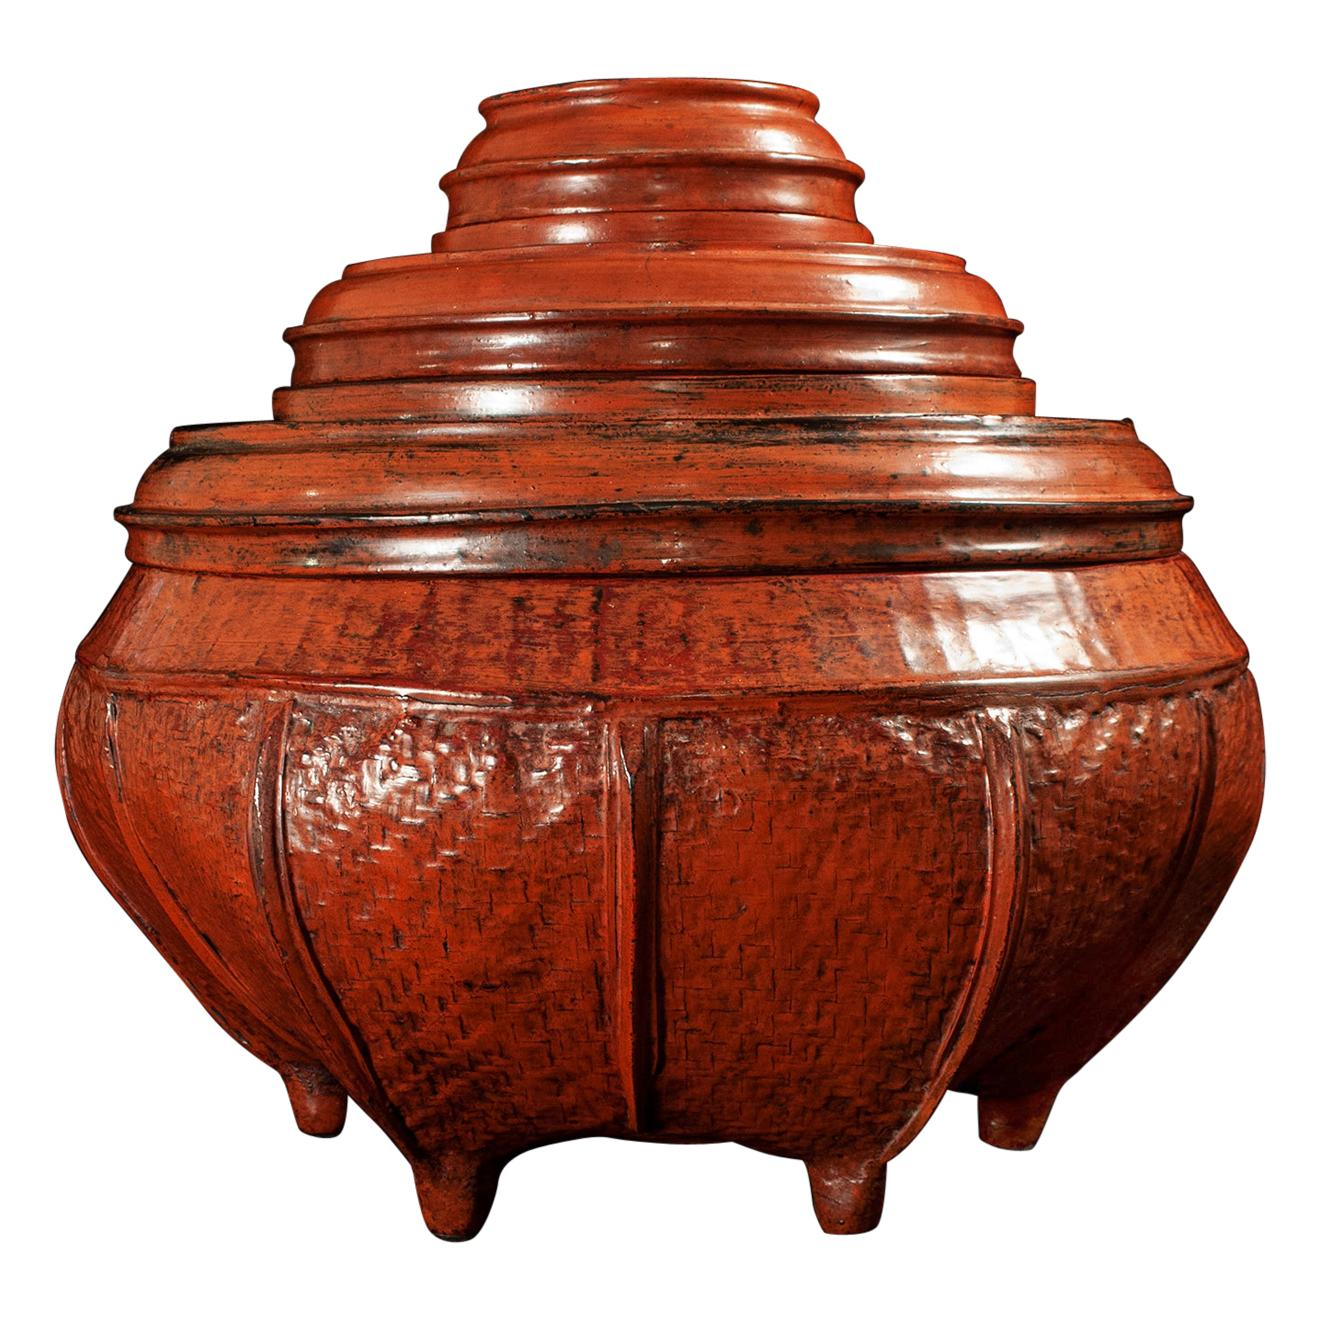 Large Early 20th Century Lacquer and Bamboo Offering Vessel, Burma